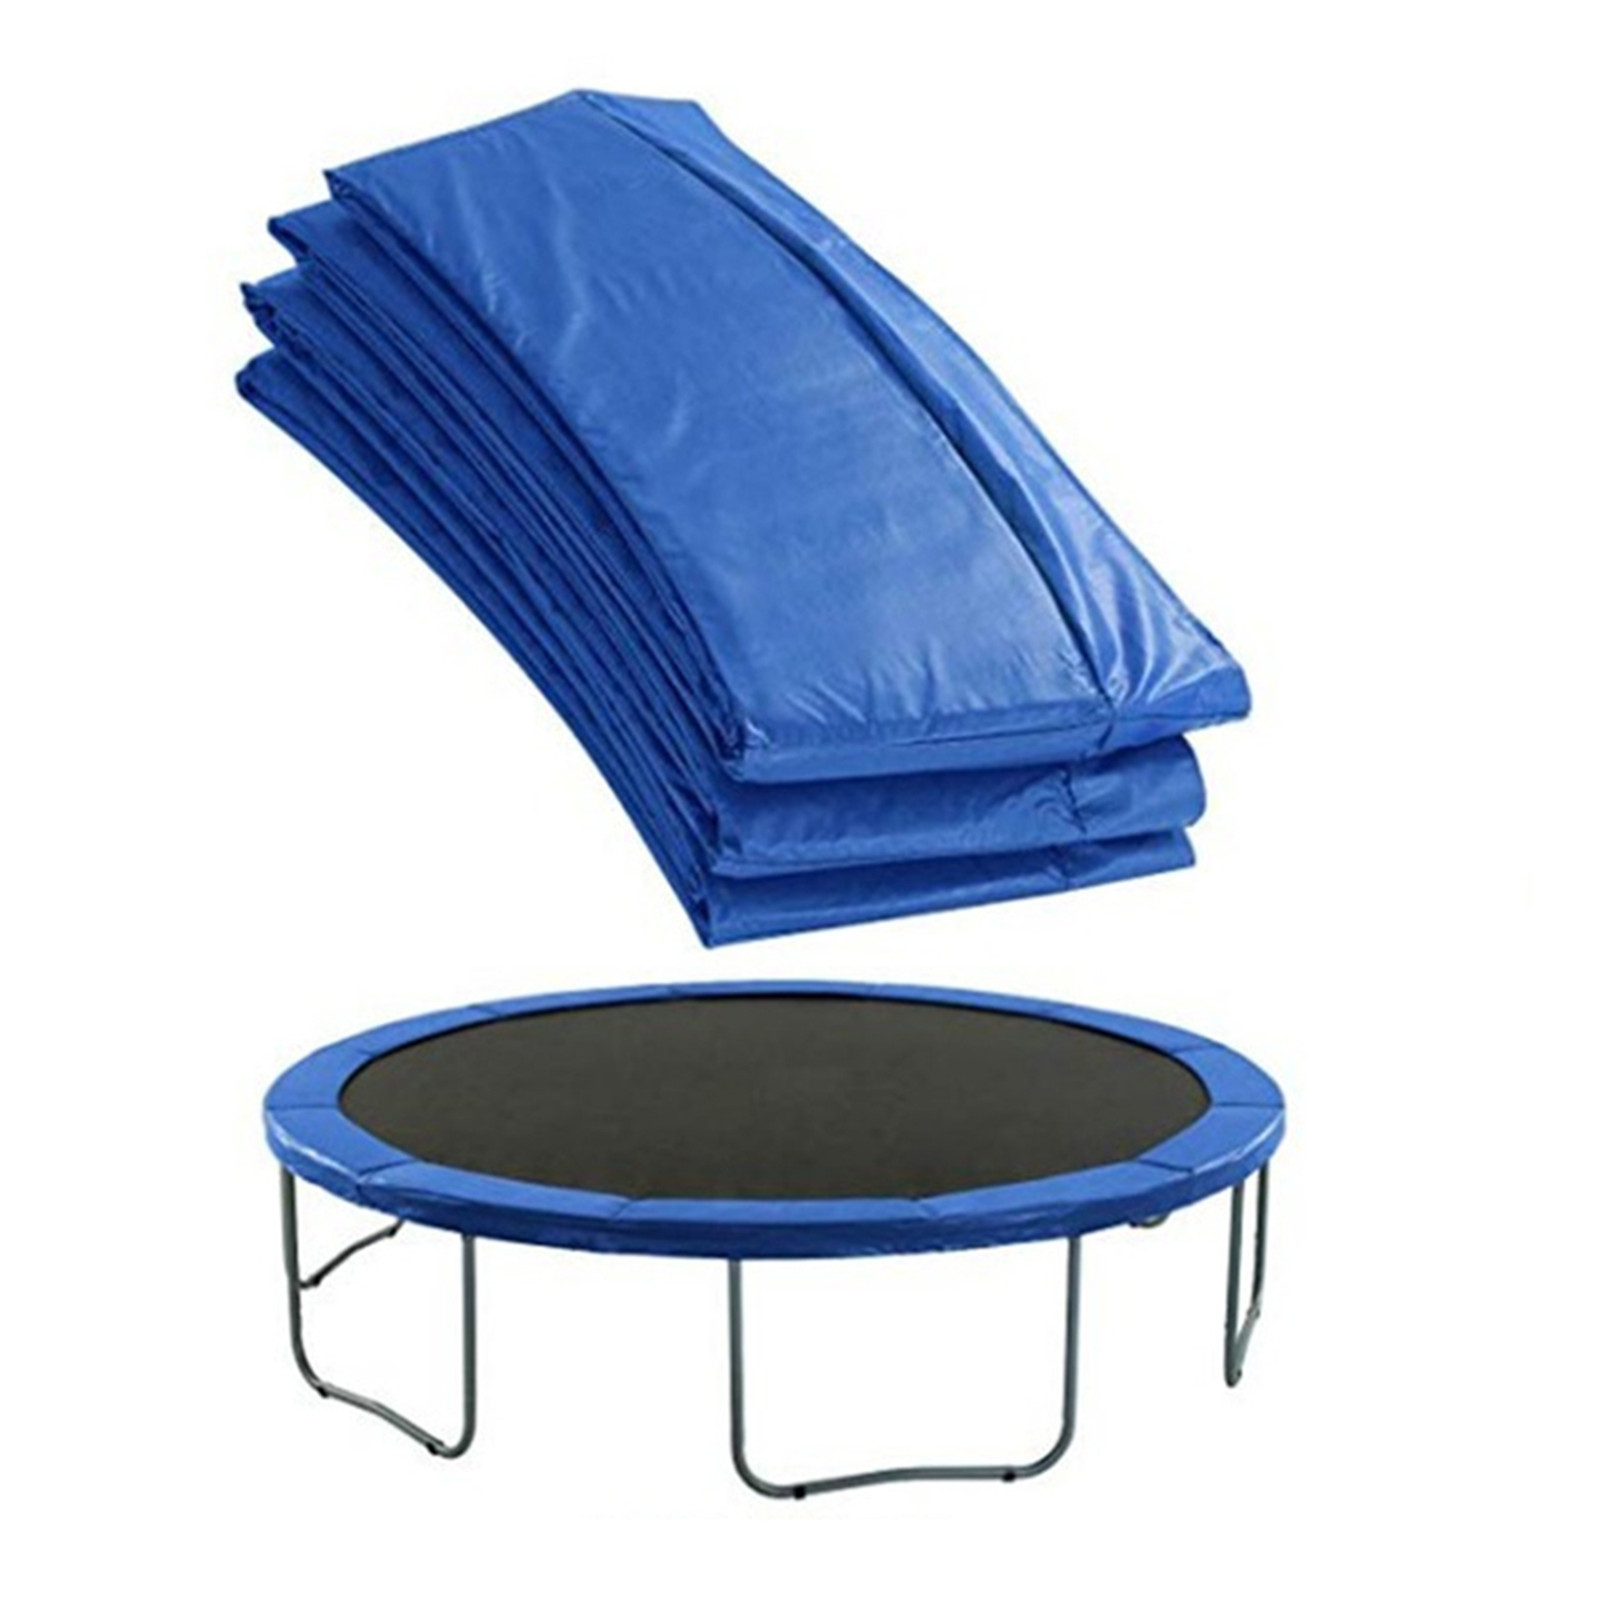 Universal Trampoline Replacement Safety Pad Spring Cover Long Lasting Trampoline Edge Cover Anti-Ultraviolet Anti-Tearing